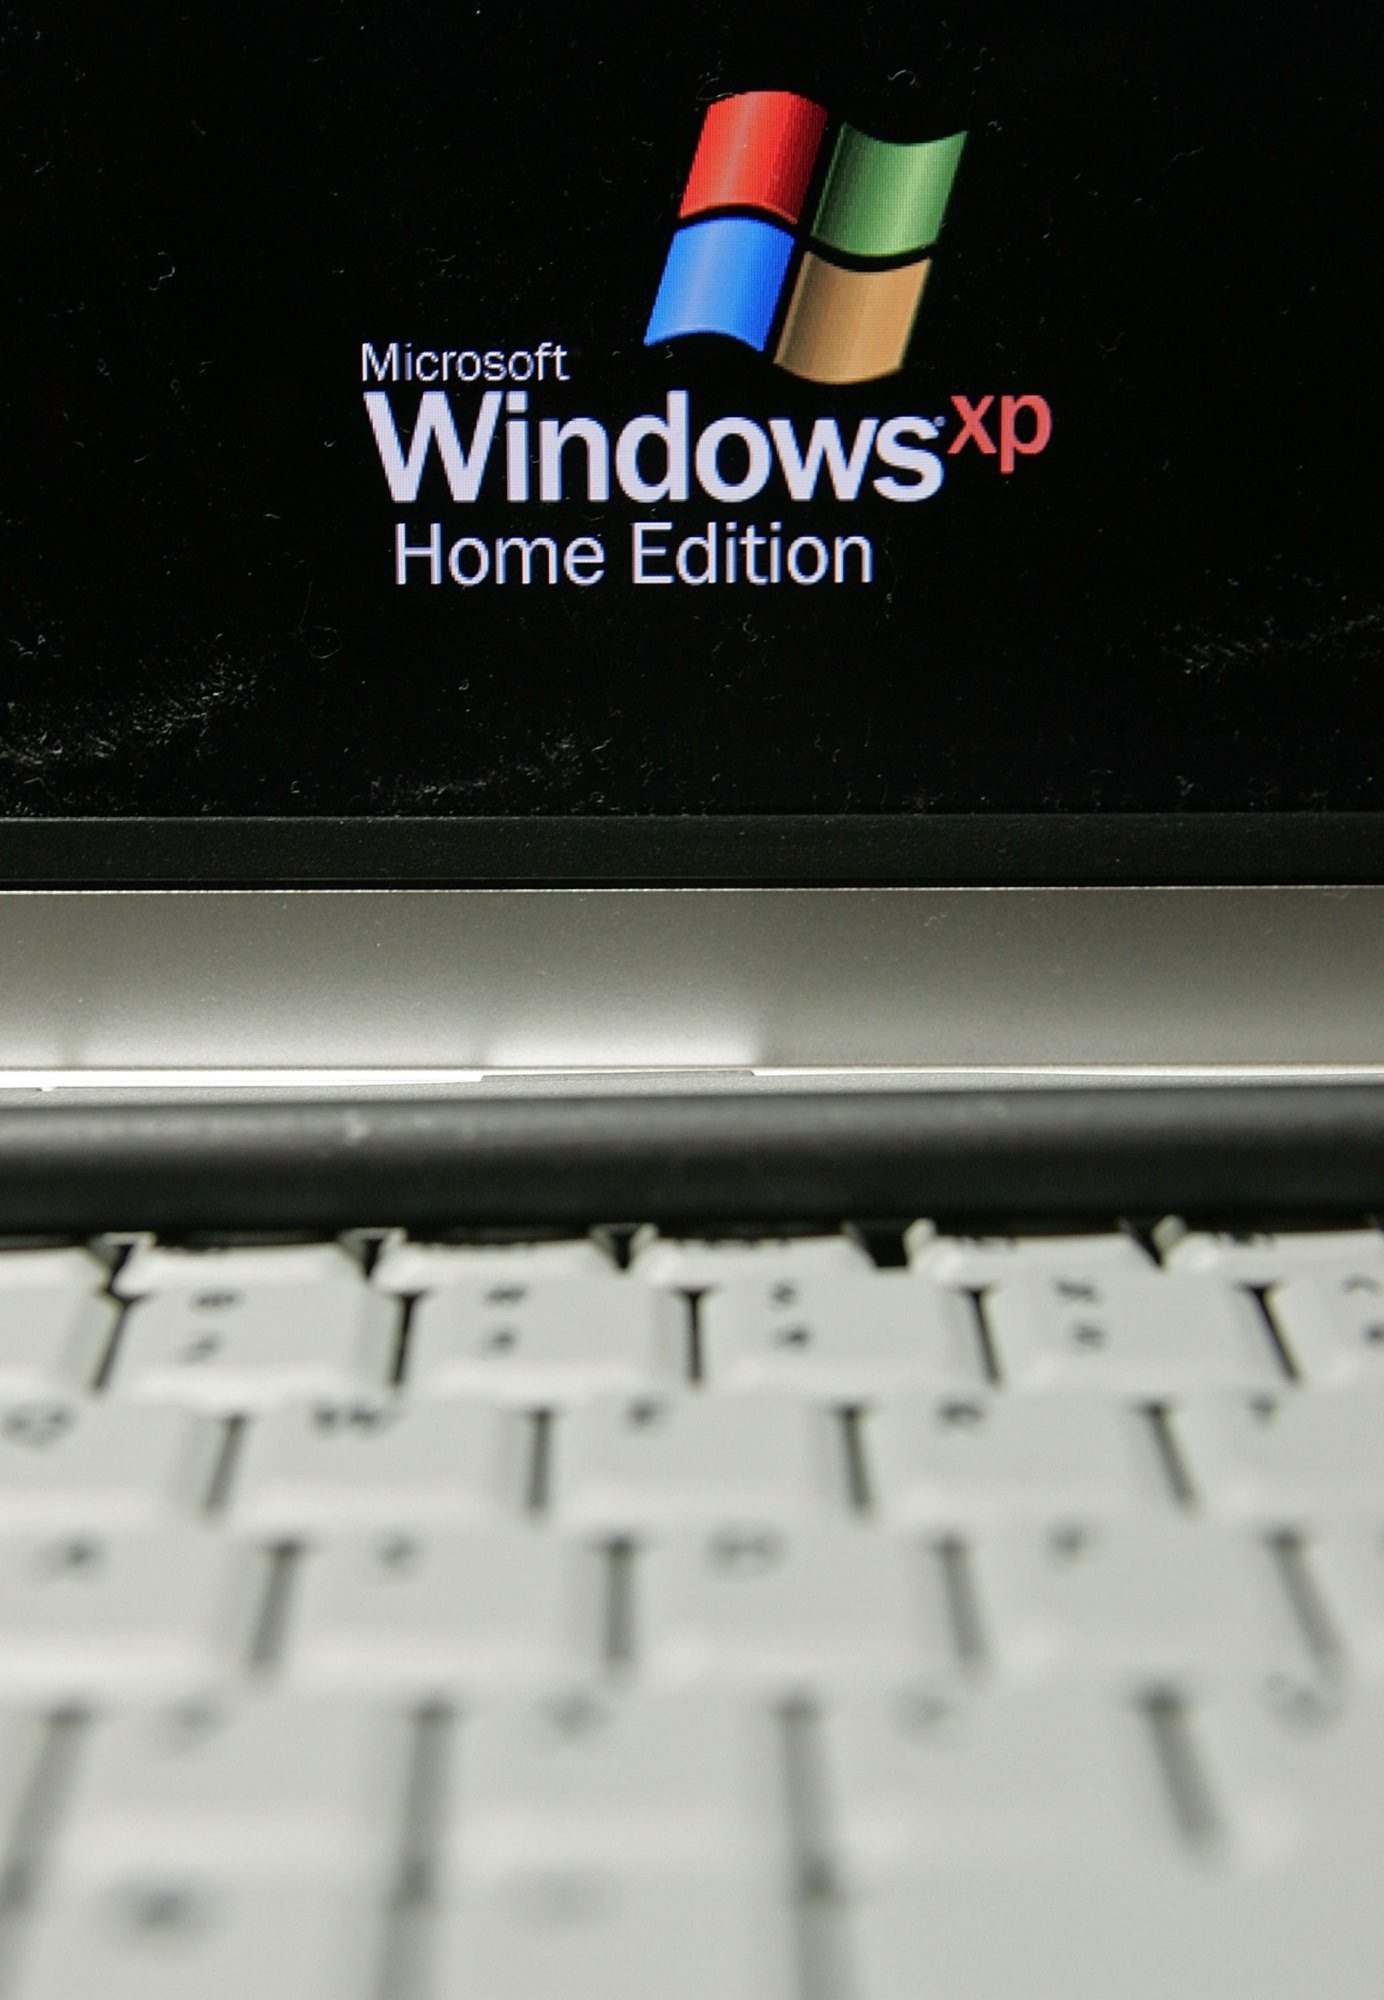 Microsoft will stop issuing security updates for Windows XP on April 8.